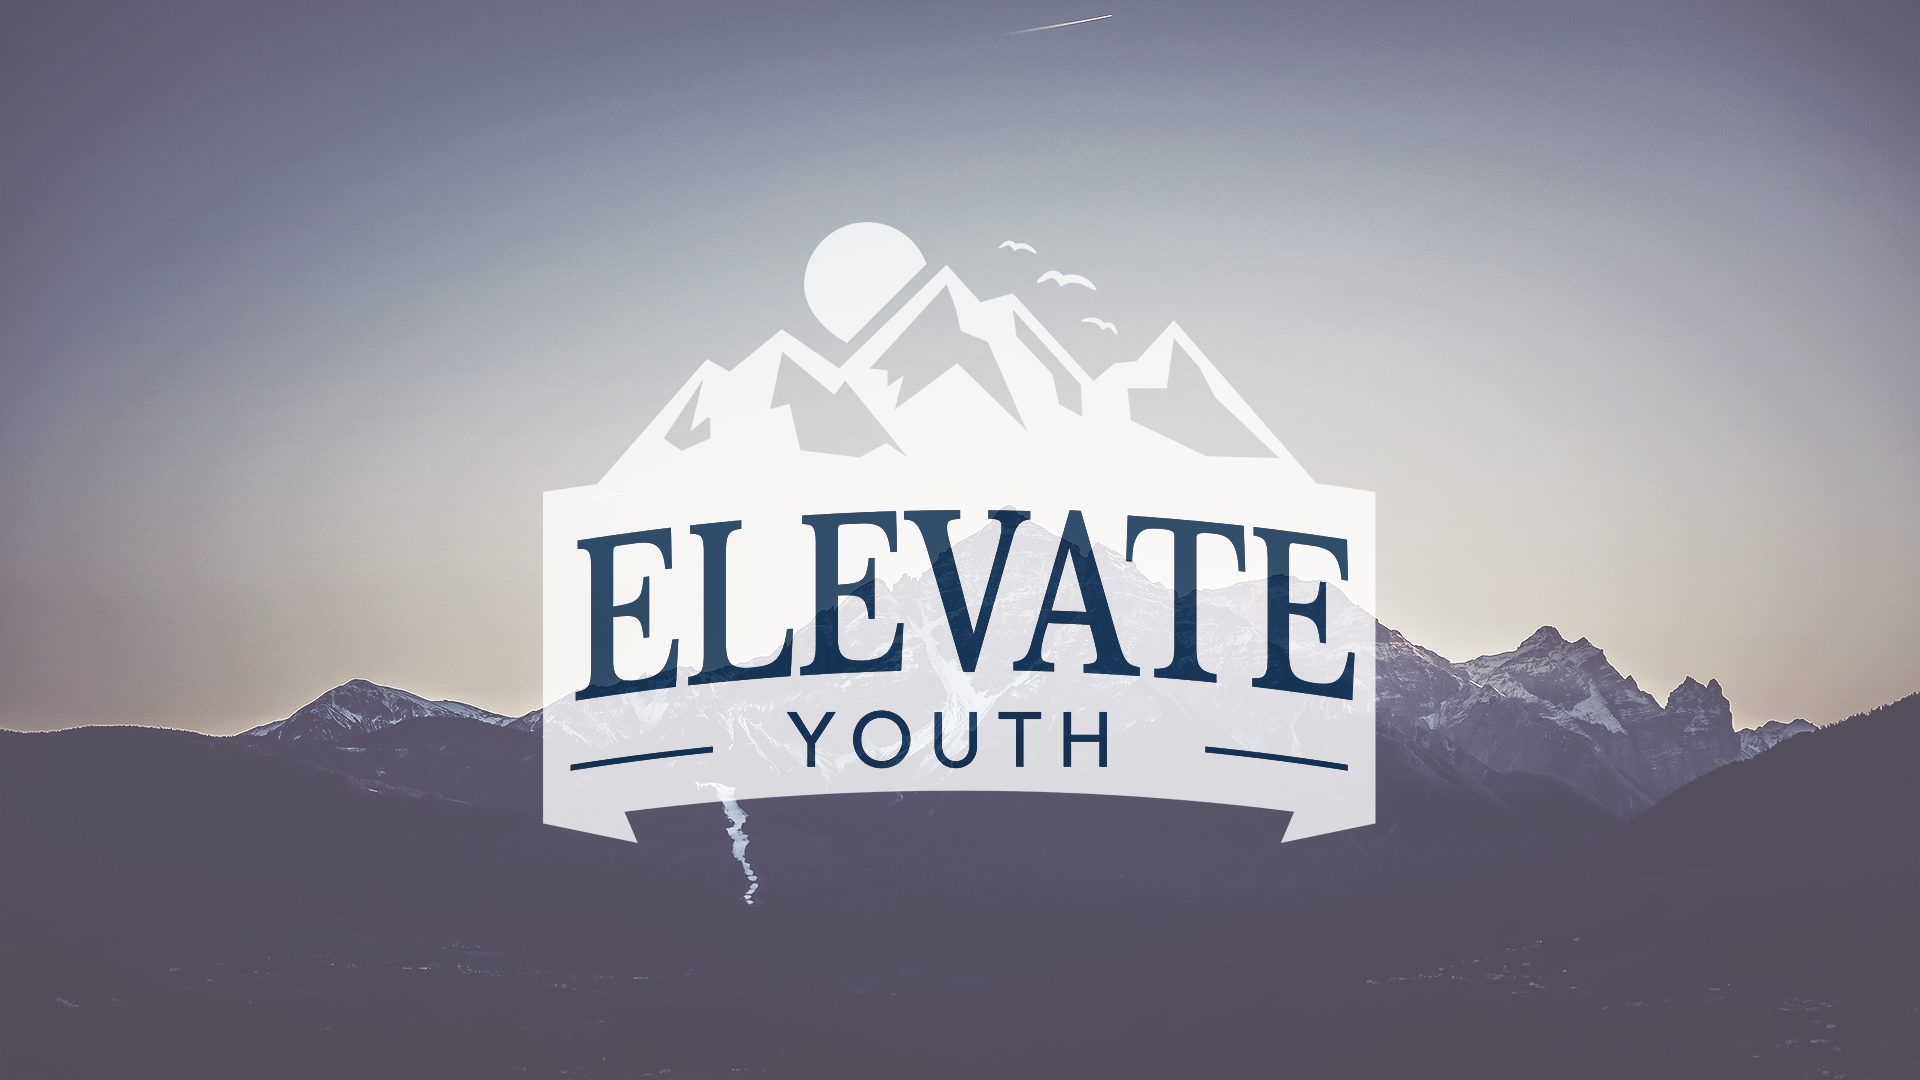 elevate_youth_filtered.png